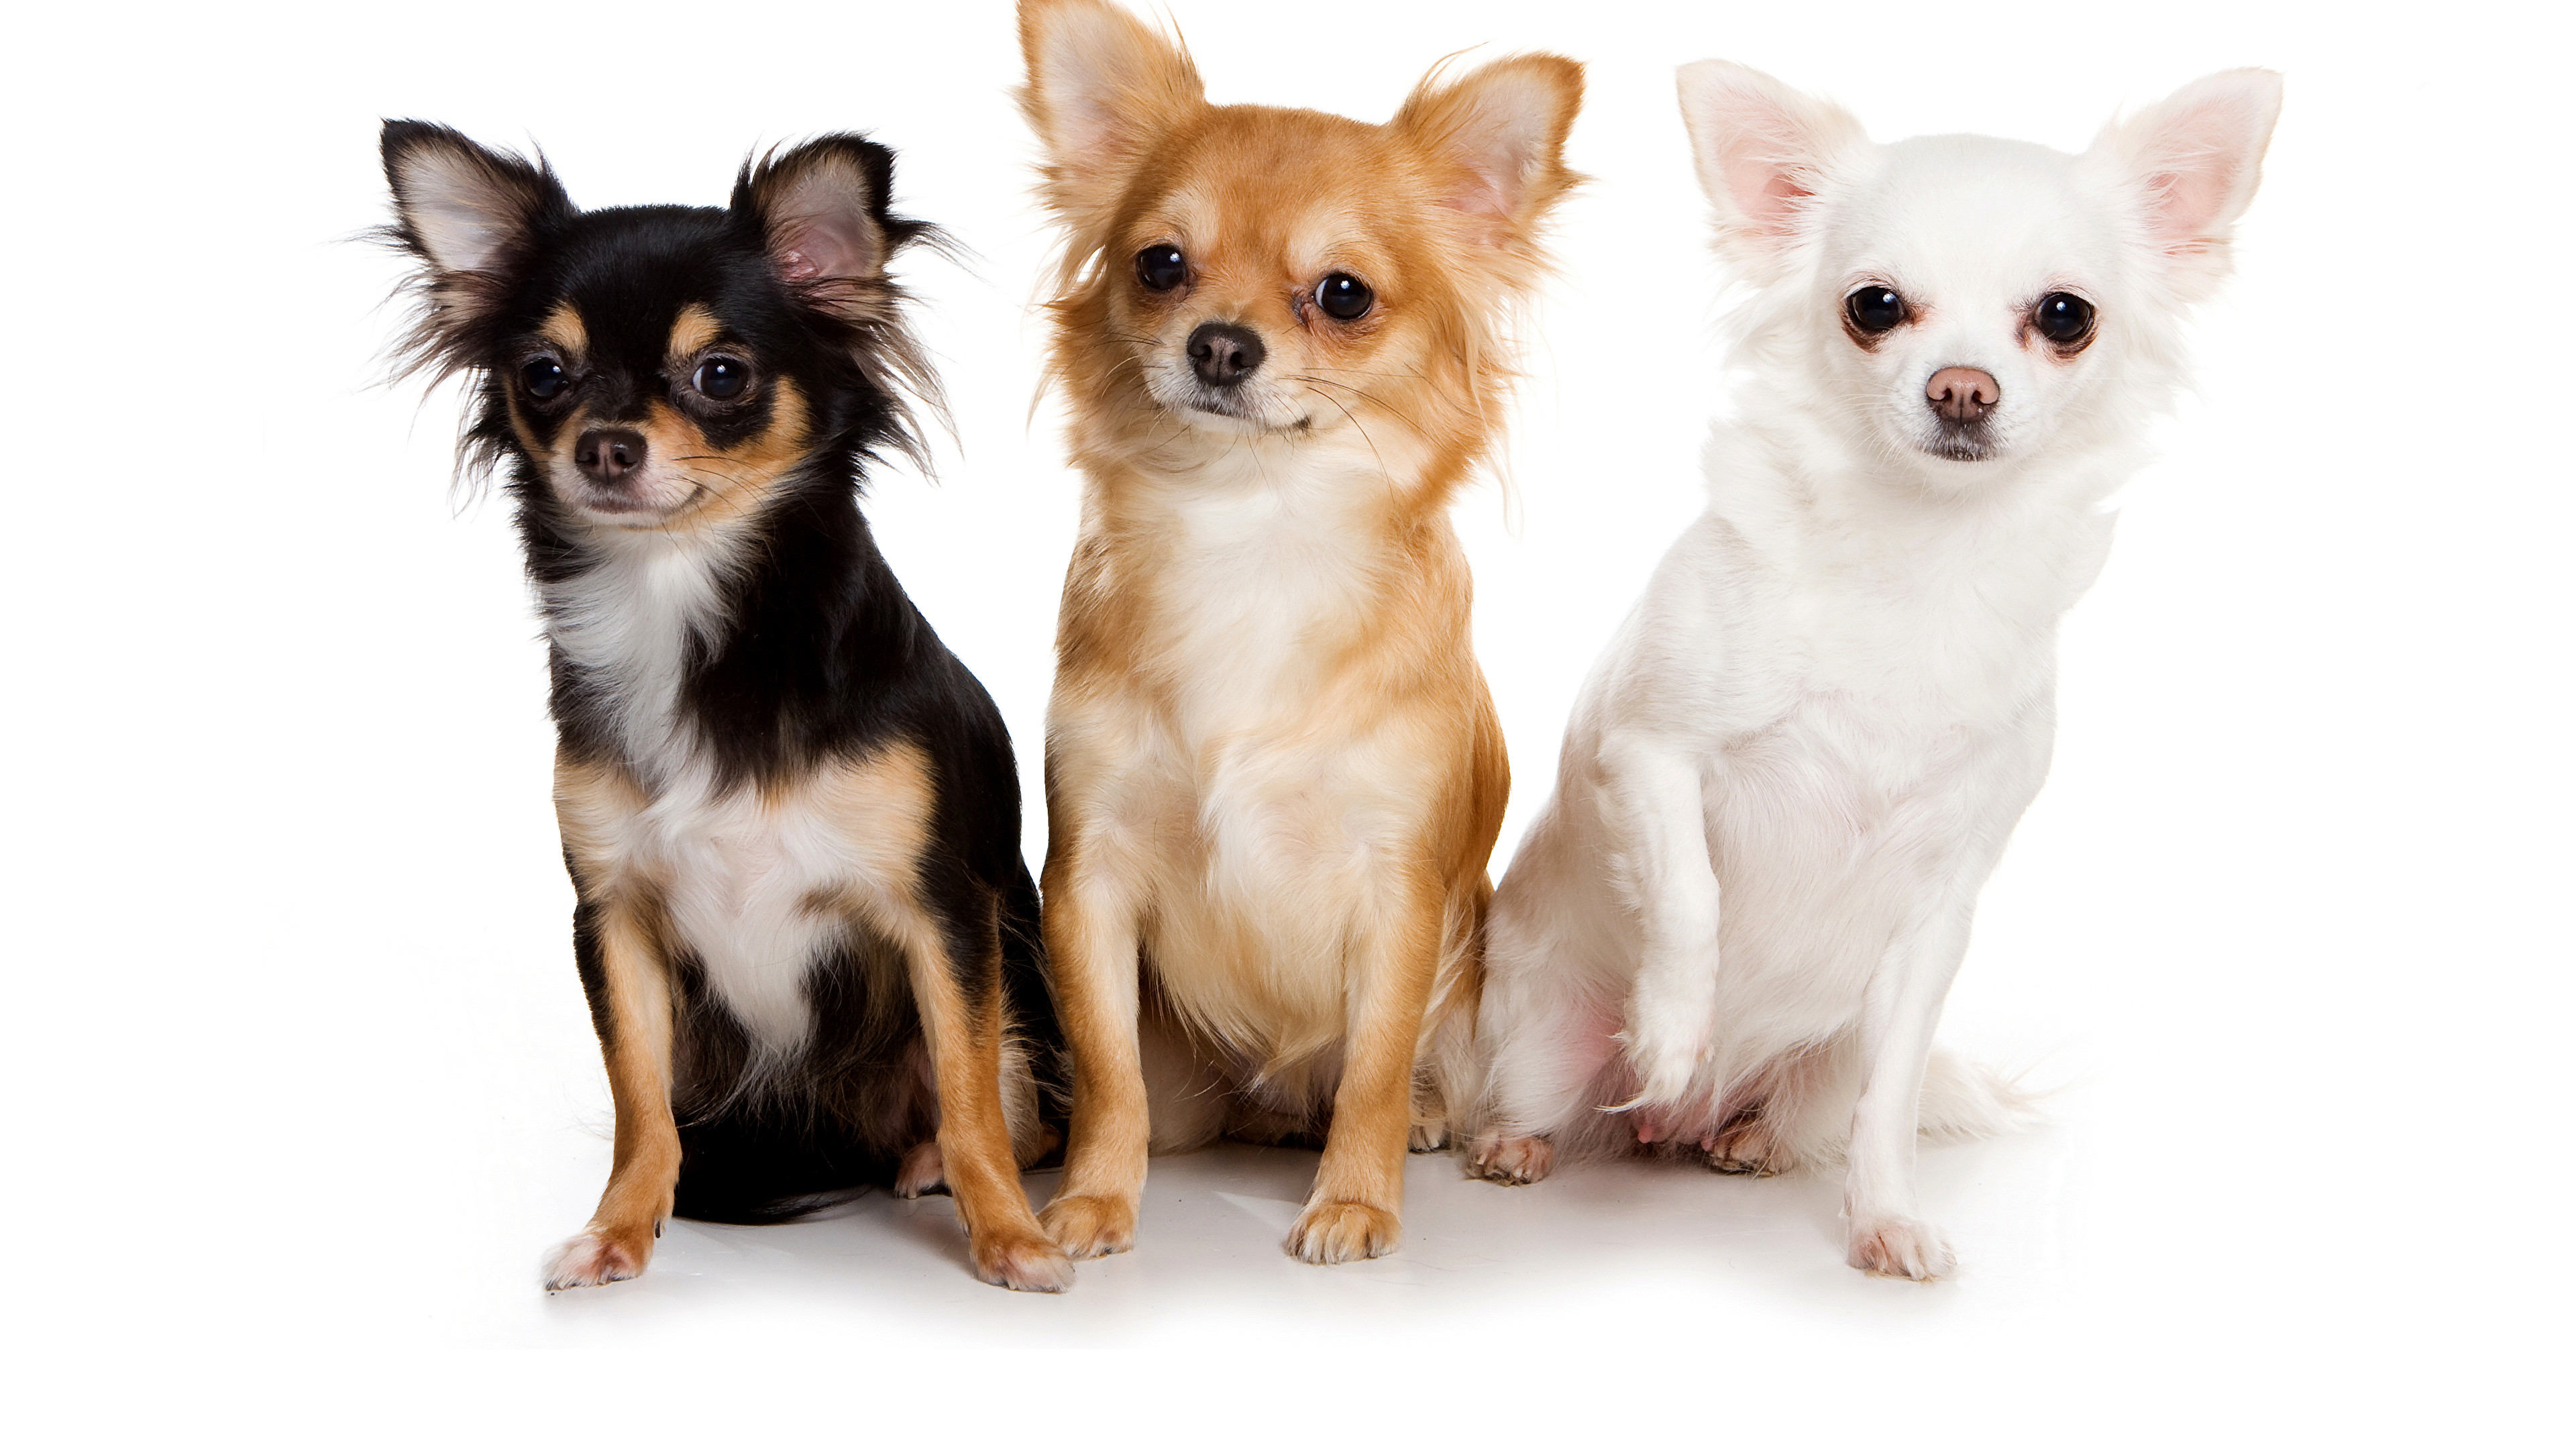 Wallpapers Chihuahua Dogs Three 3 Animals White background 3840×2160